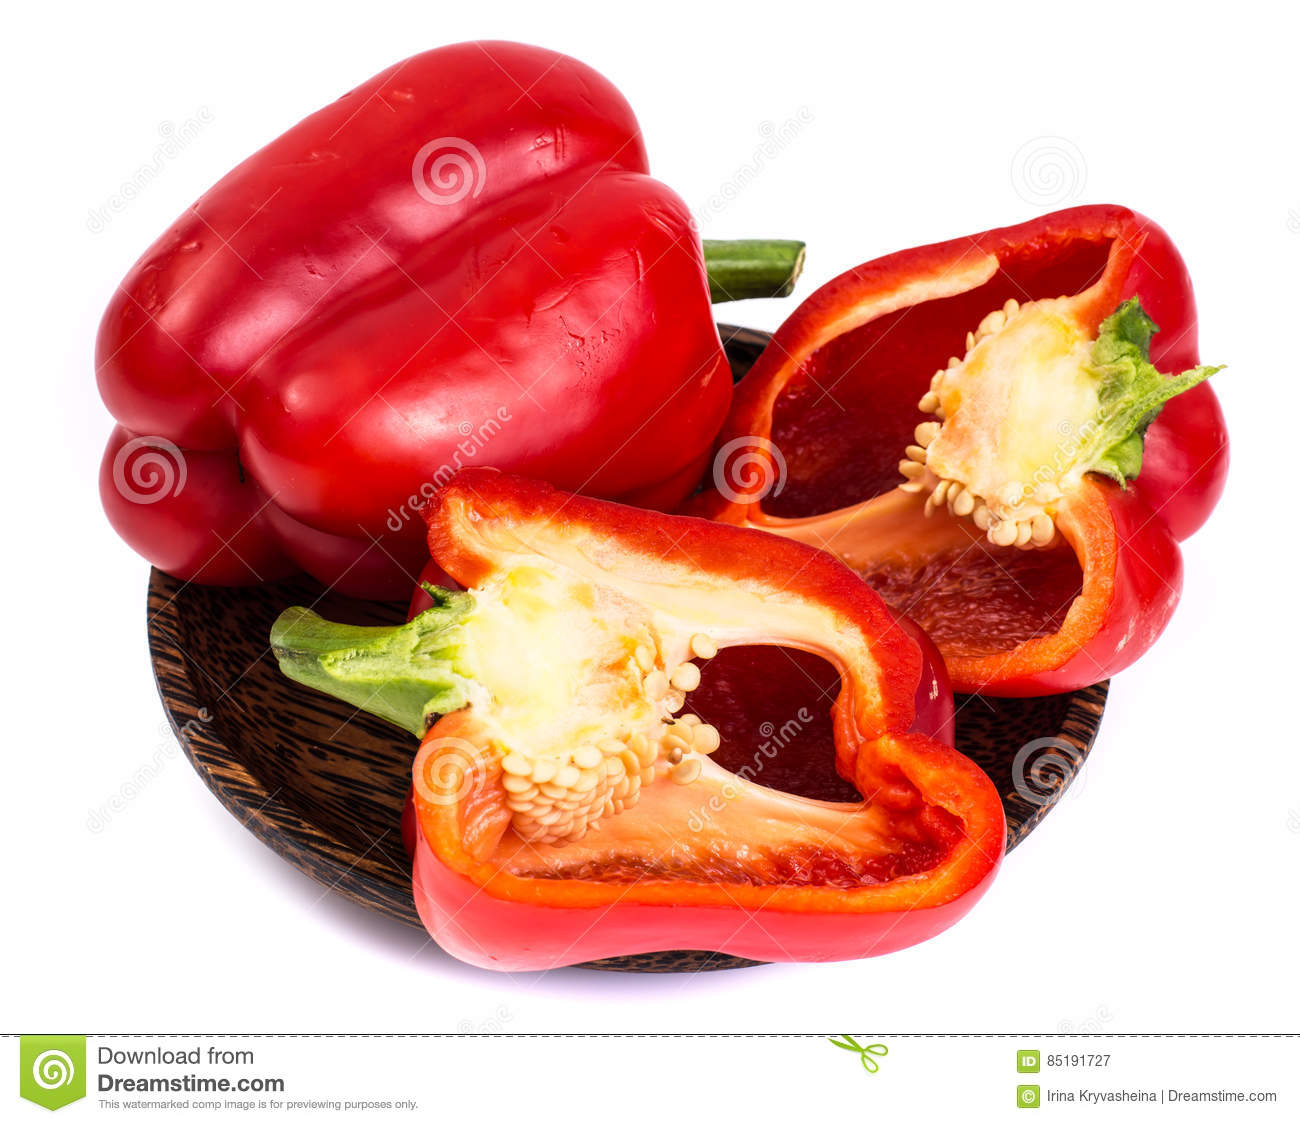 Red bell pepper in cut with seeds